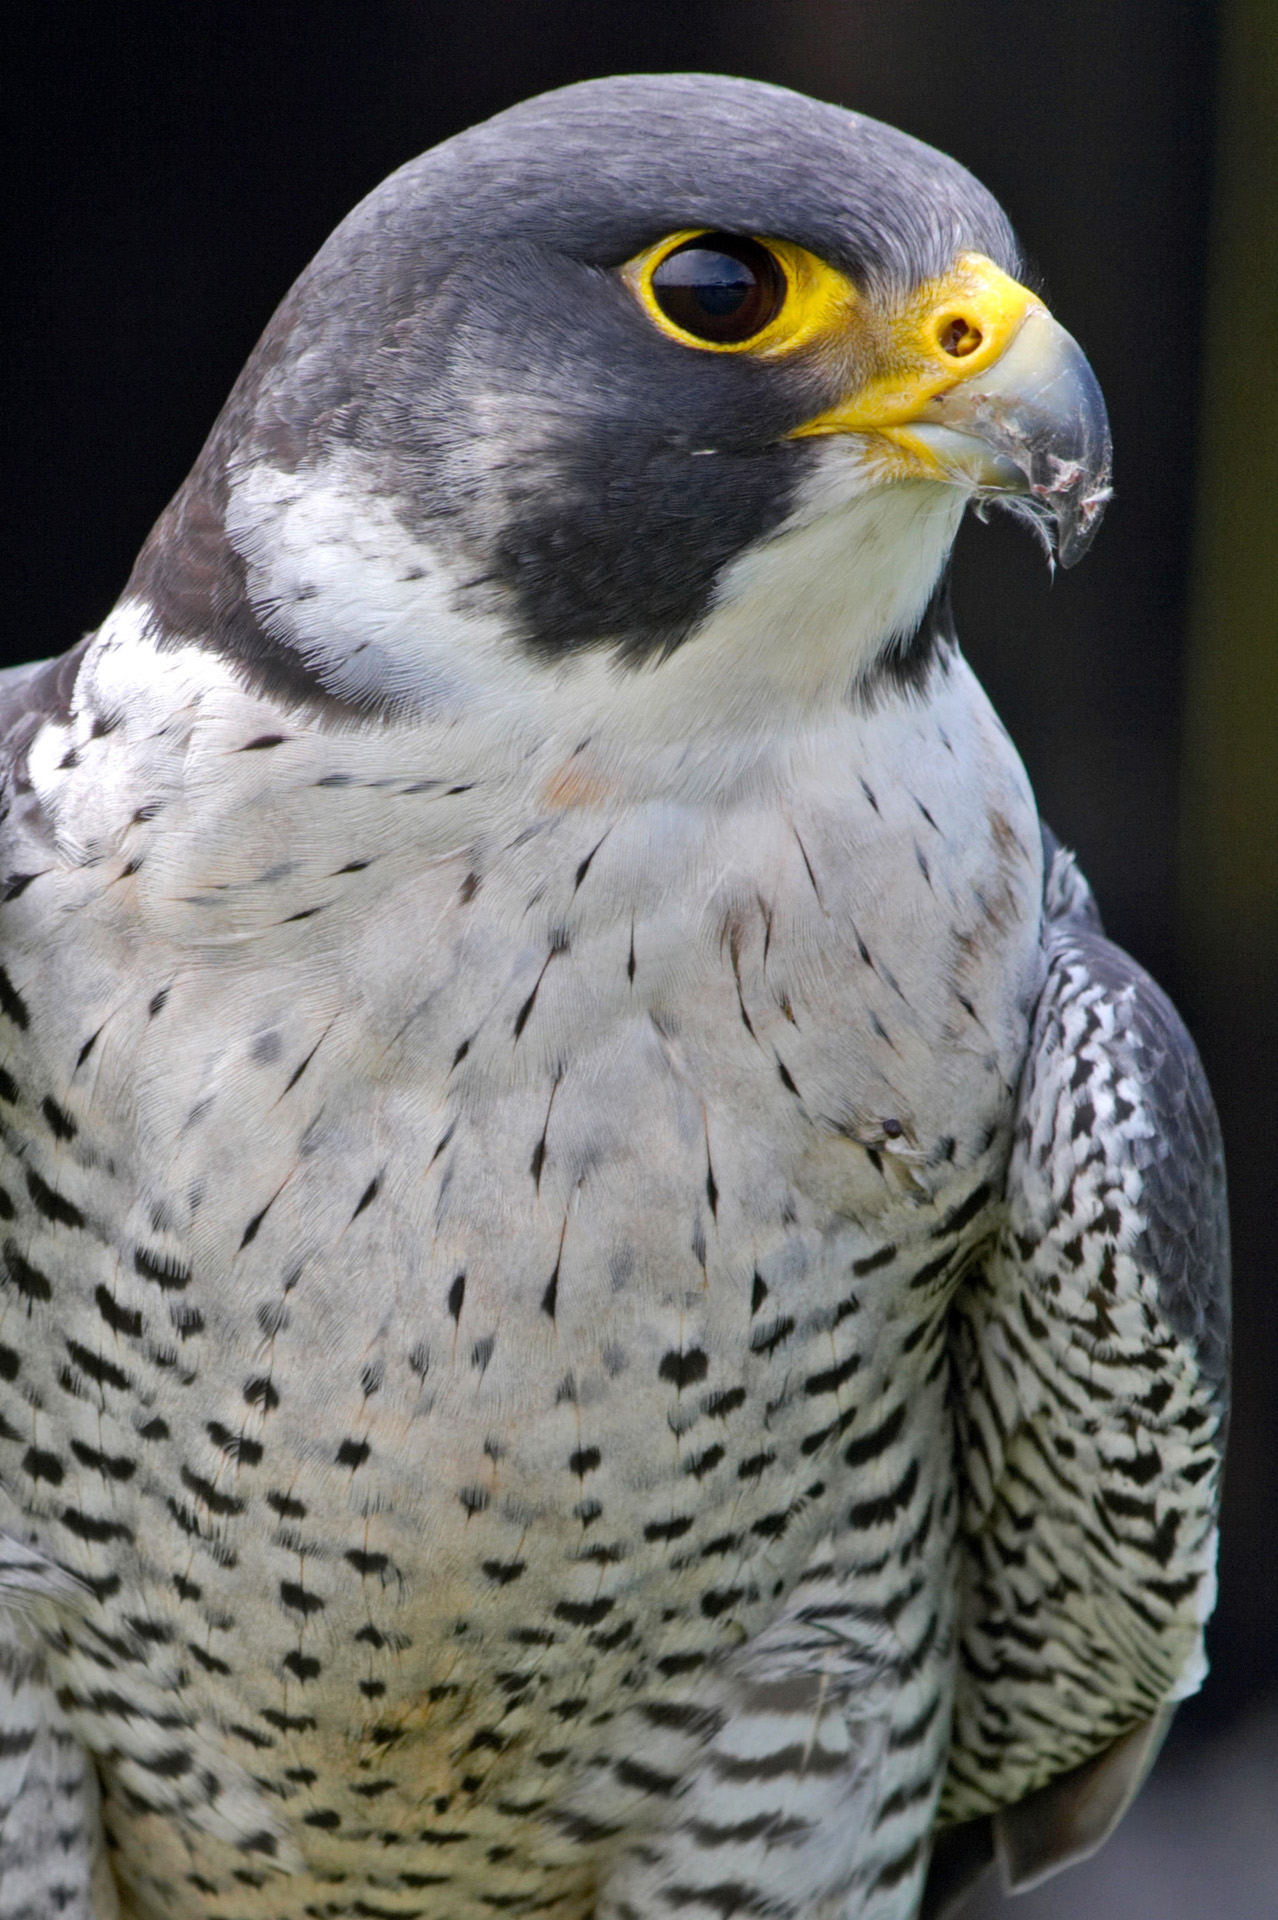 A saker falcon with very strong lenses | I pray Im not